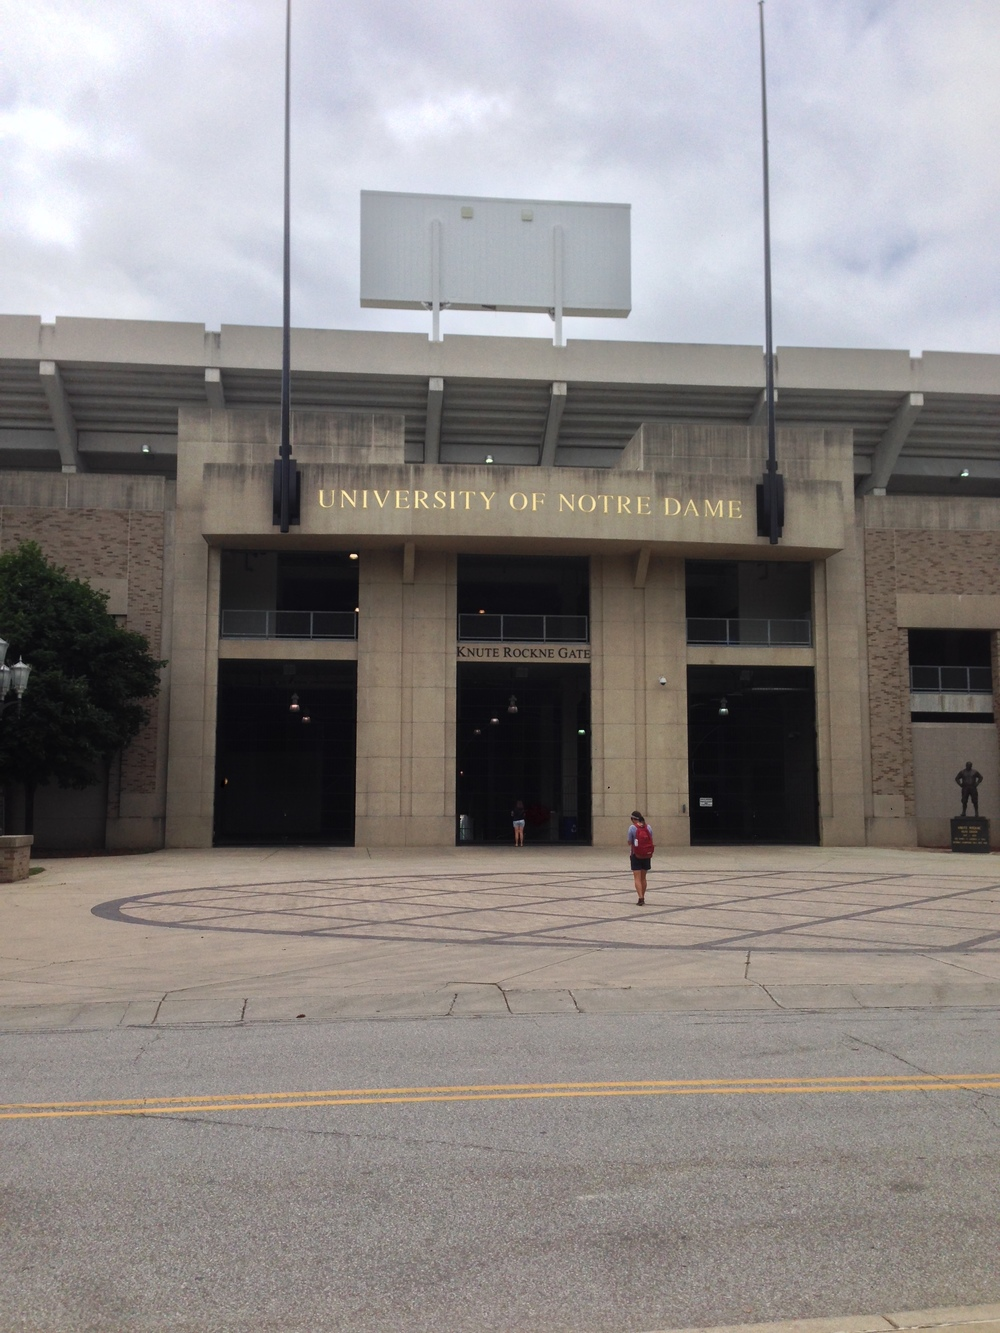 Notre Dame's stadium is on campus